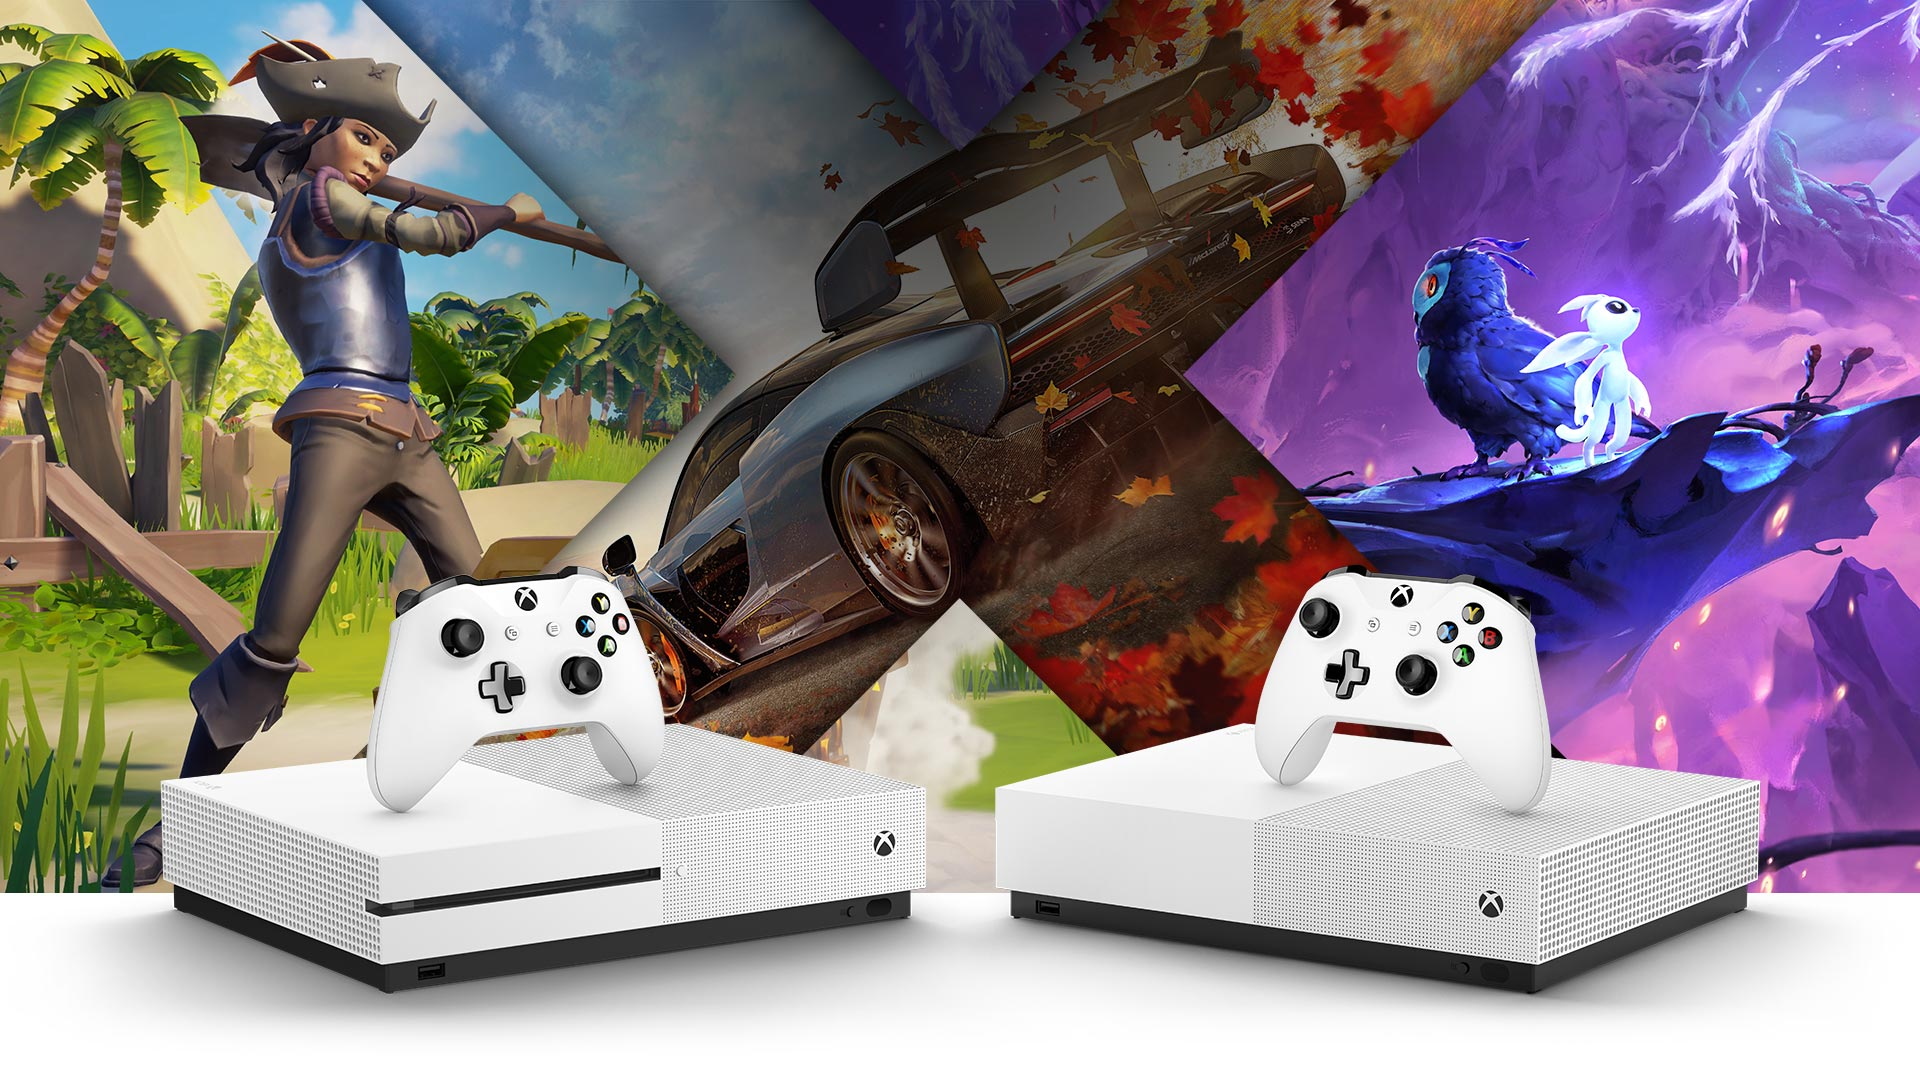 Vista frontal da Xbox One S e da Xbox One S All Digital Edition rodeadas por arte do Sea of Thieves, do Forza Horizon 4 e do Ori and the Will of Wisps